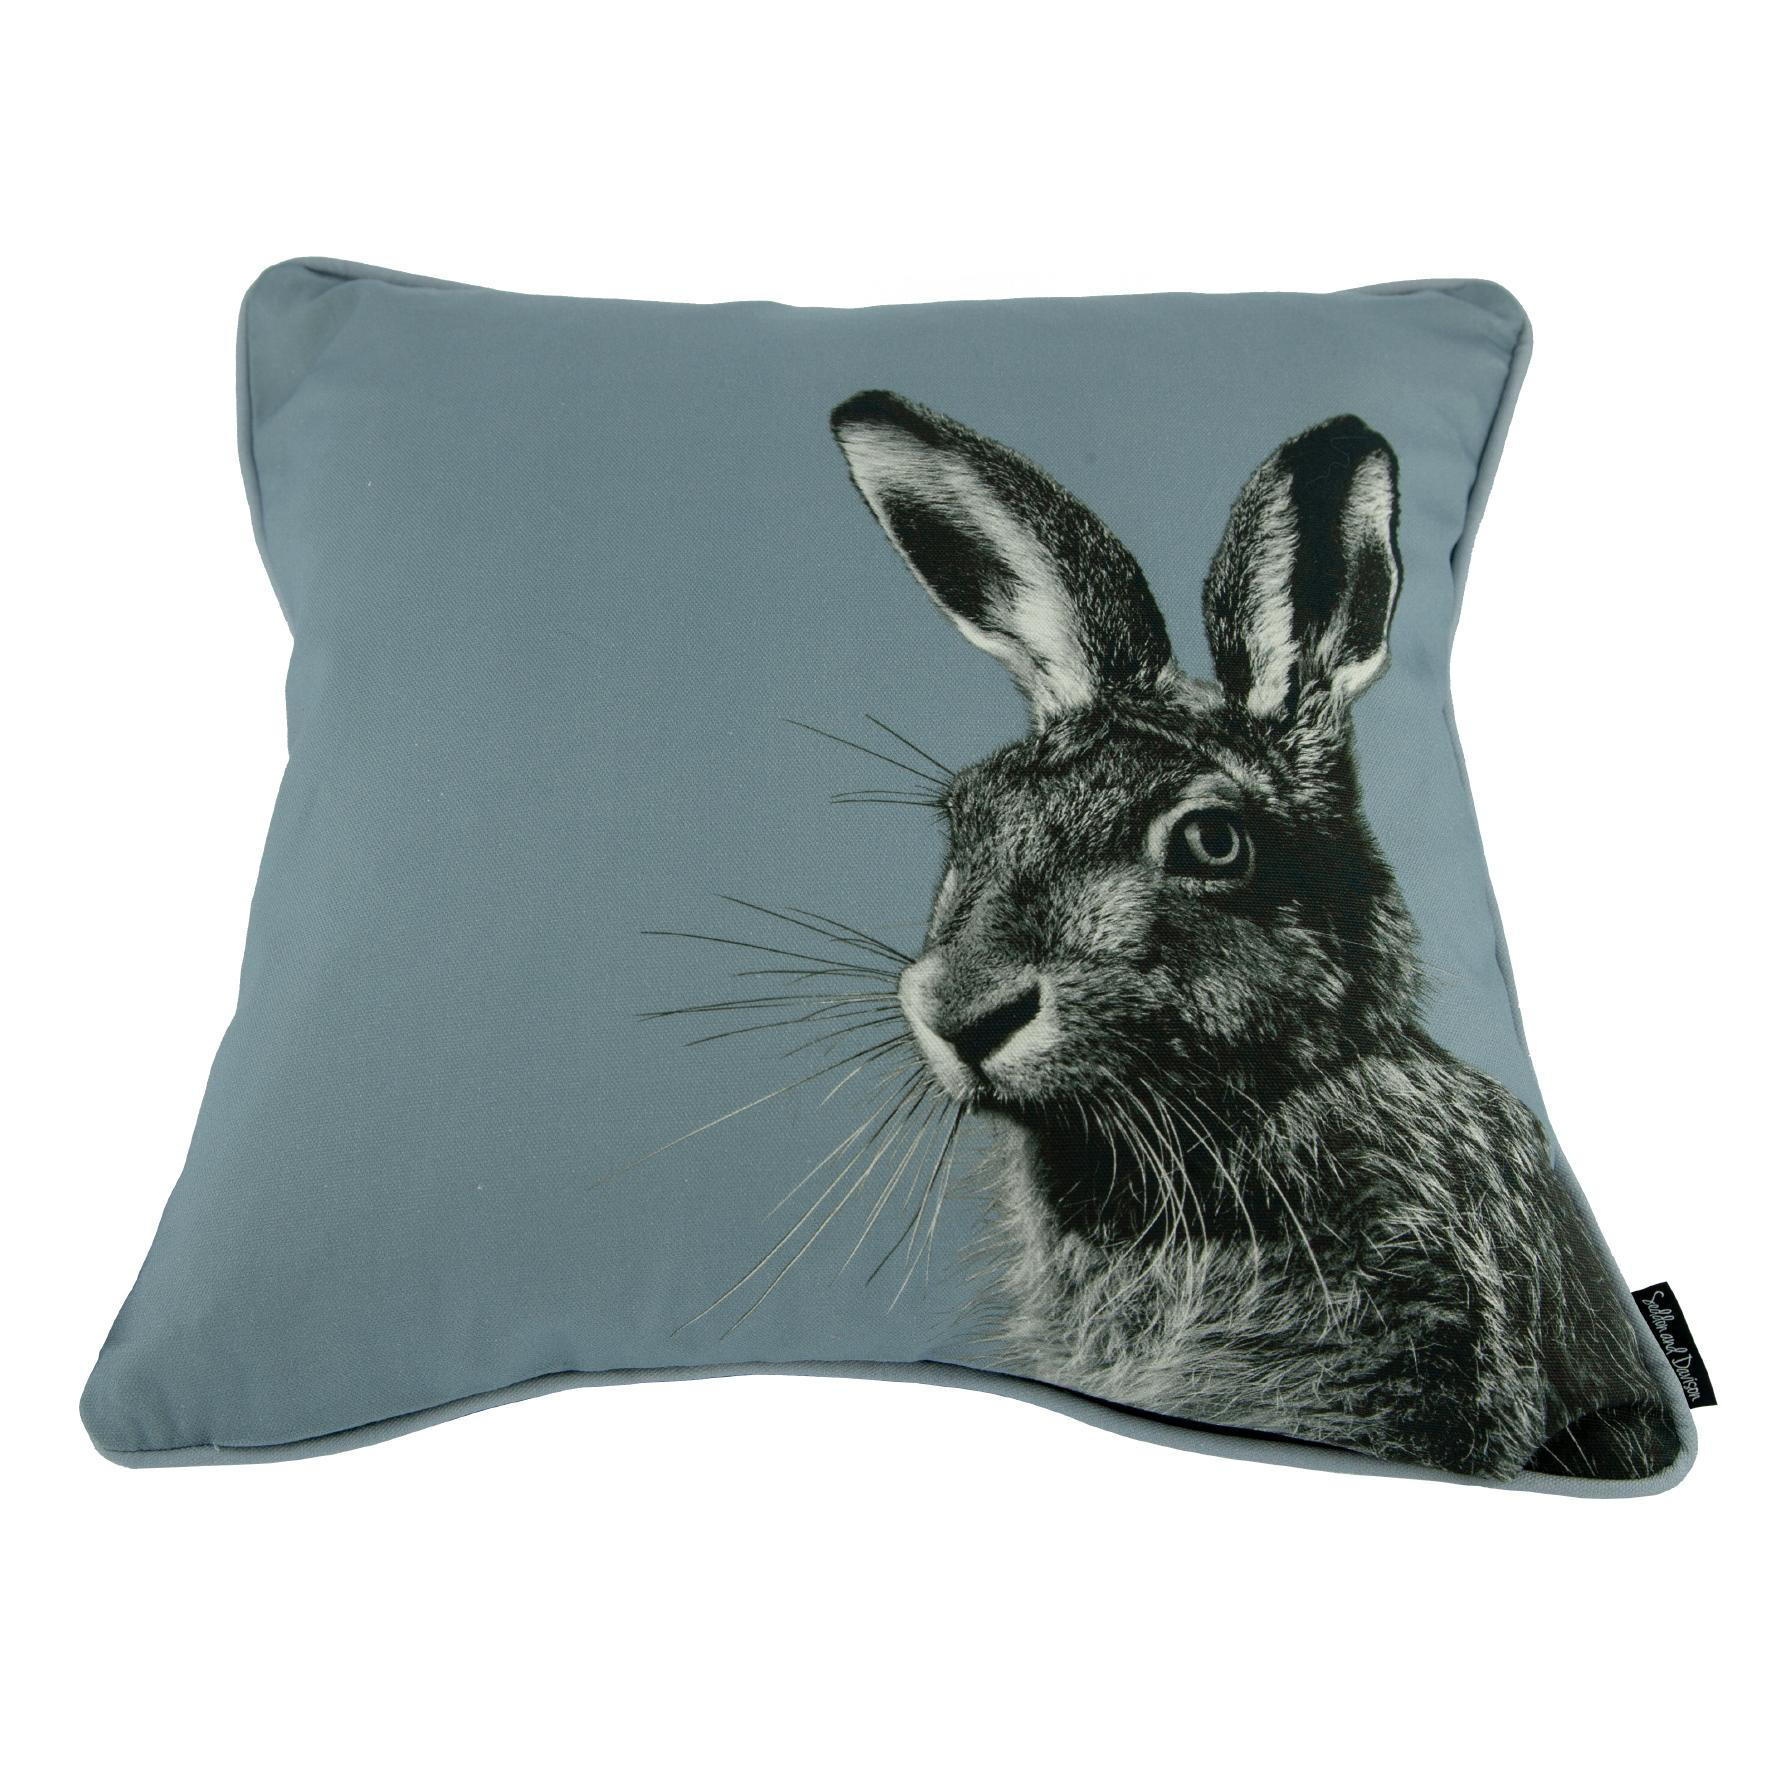 Hare cushion on pale grey